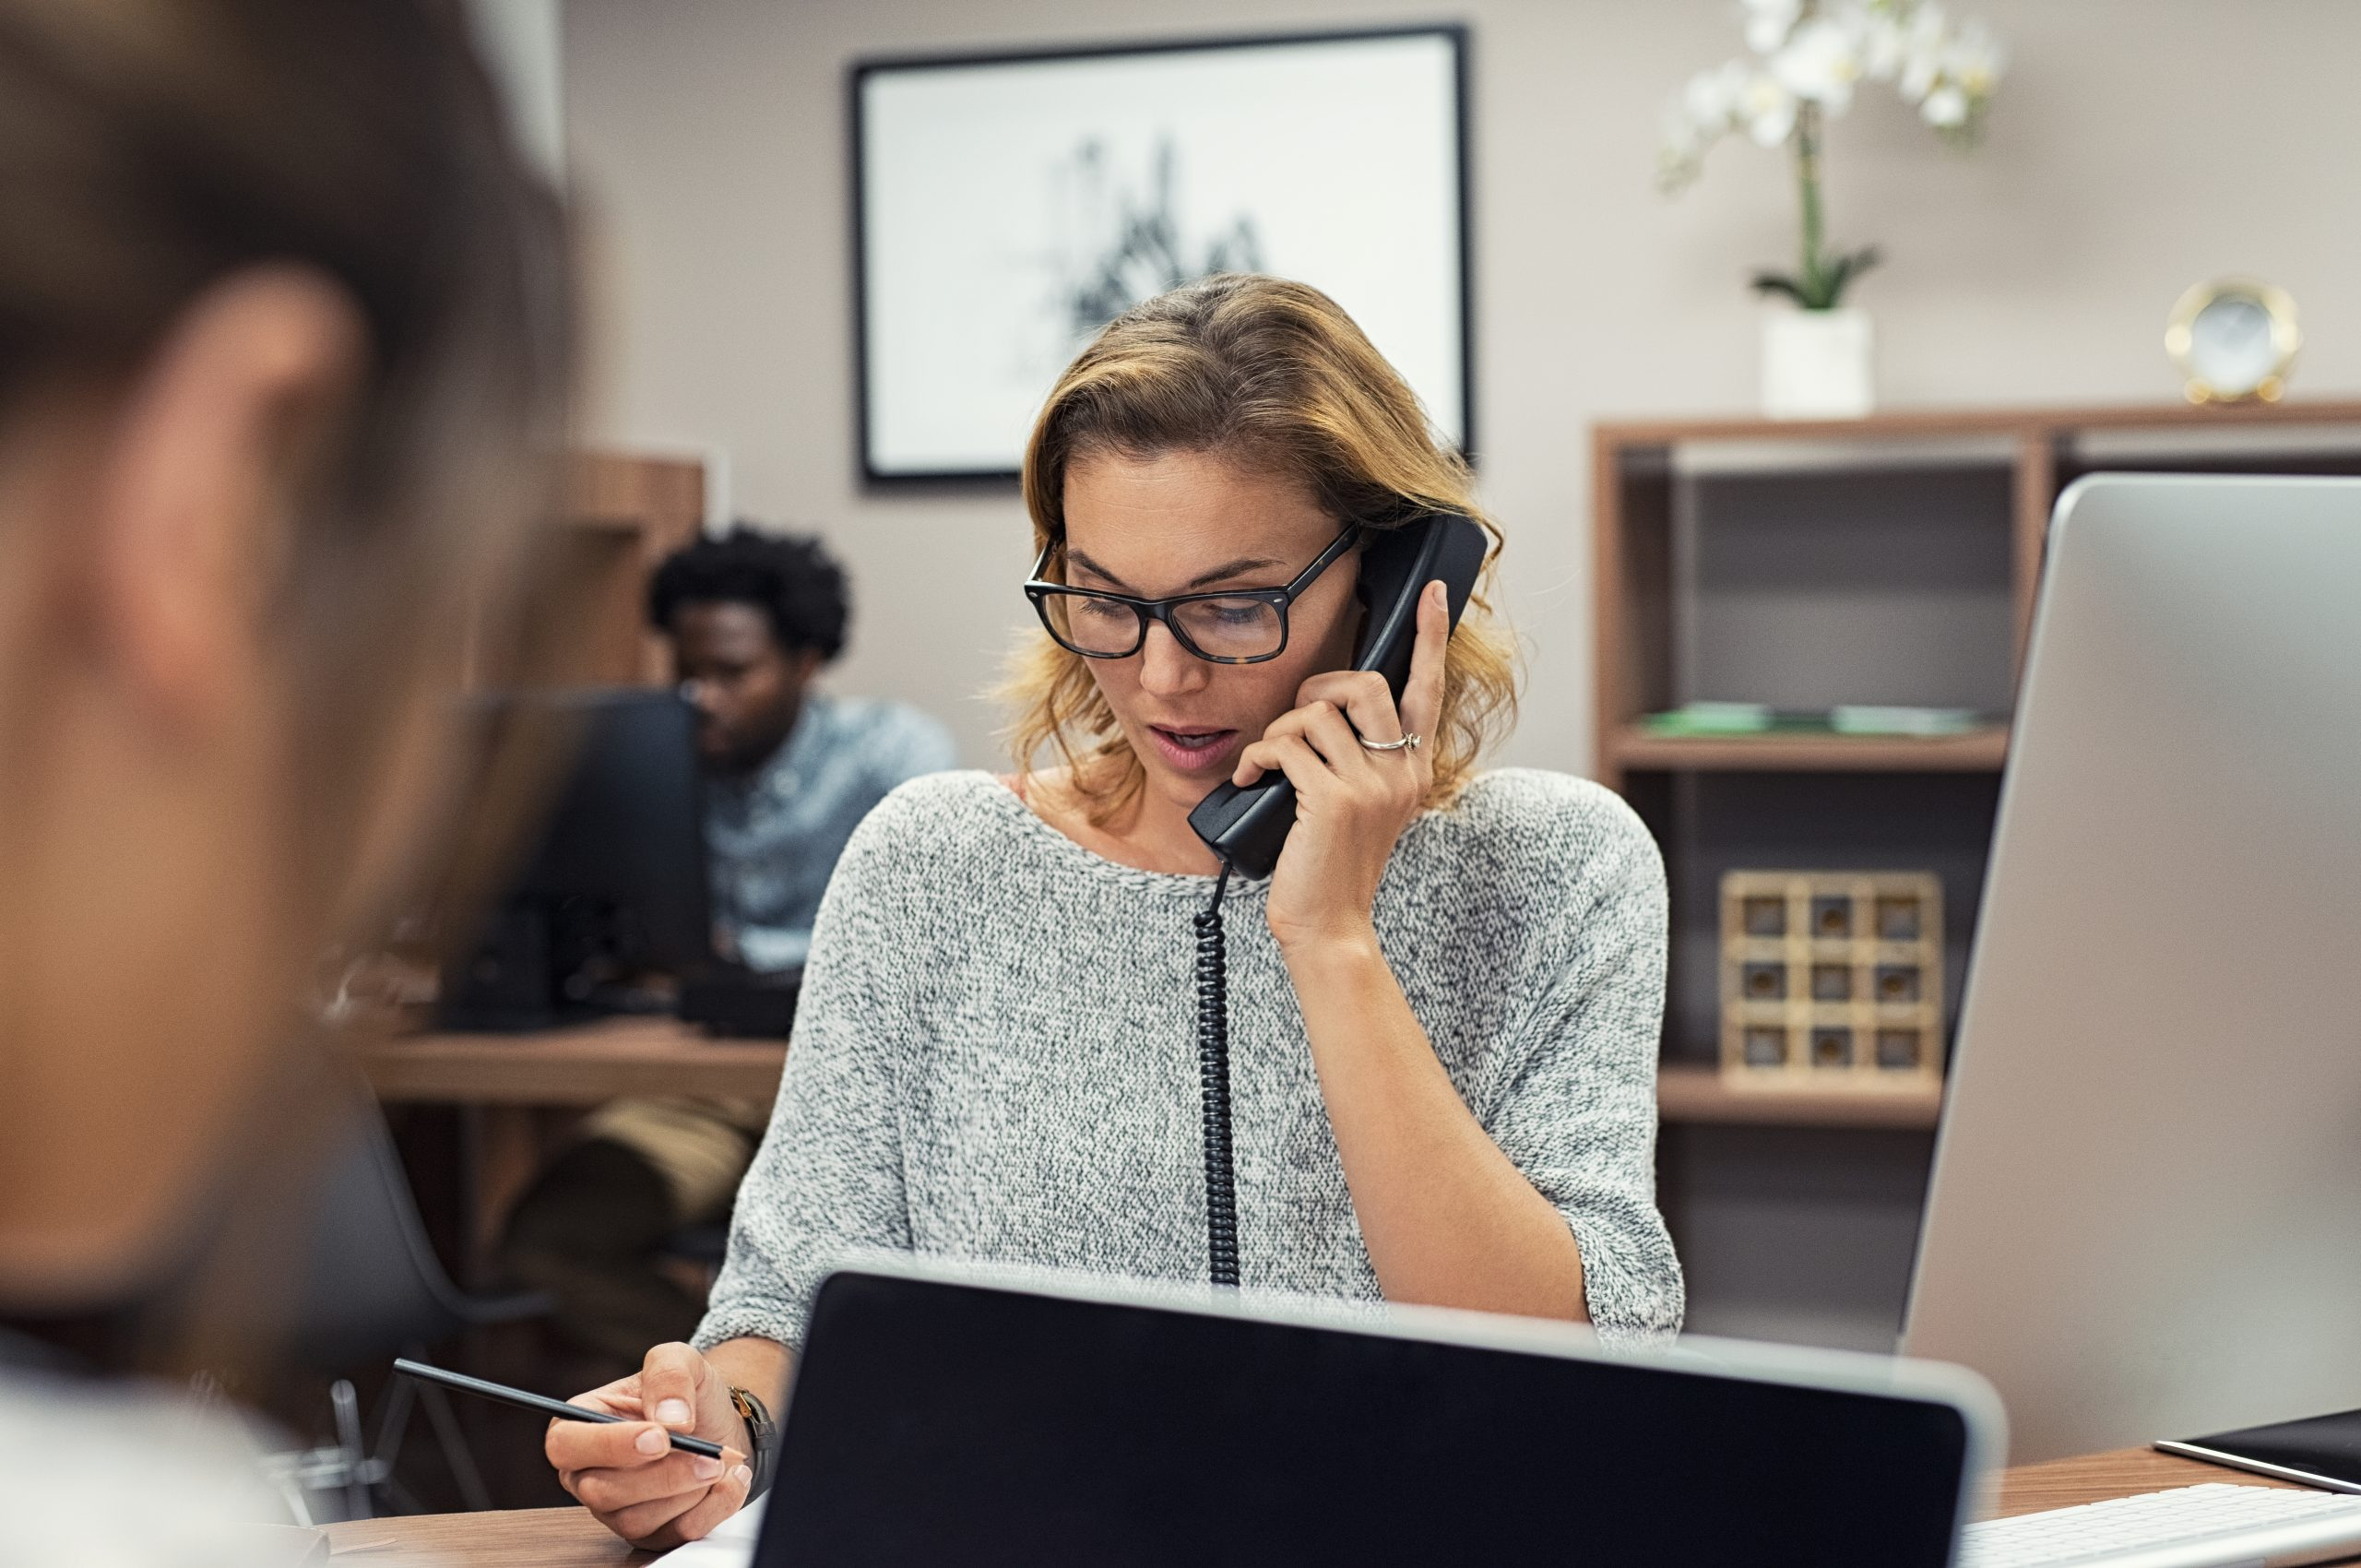 Woman in office talks on the phone while taking notes